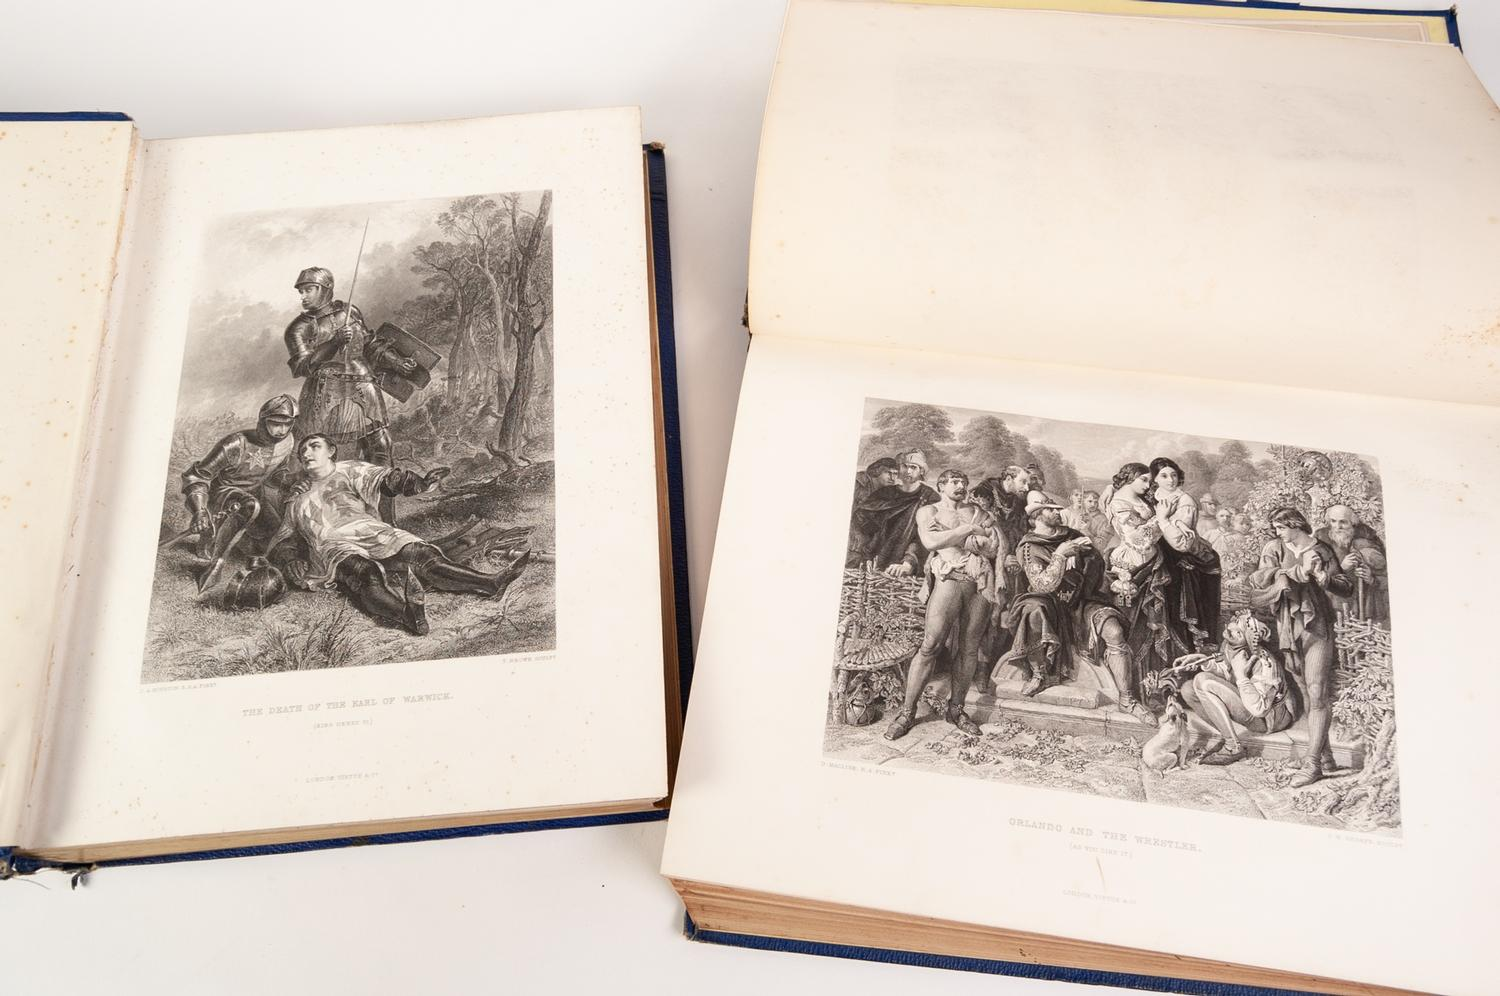 Lot 61 - The Works of Shakespeare ?The Imperial Shakespeare?, with notes by Charles Knight in 4 volumes,